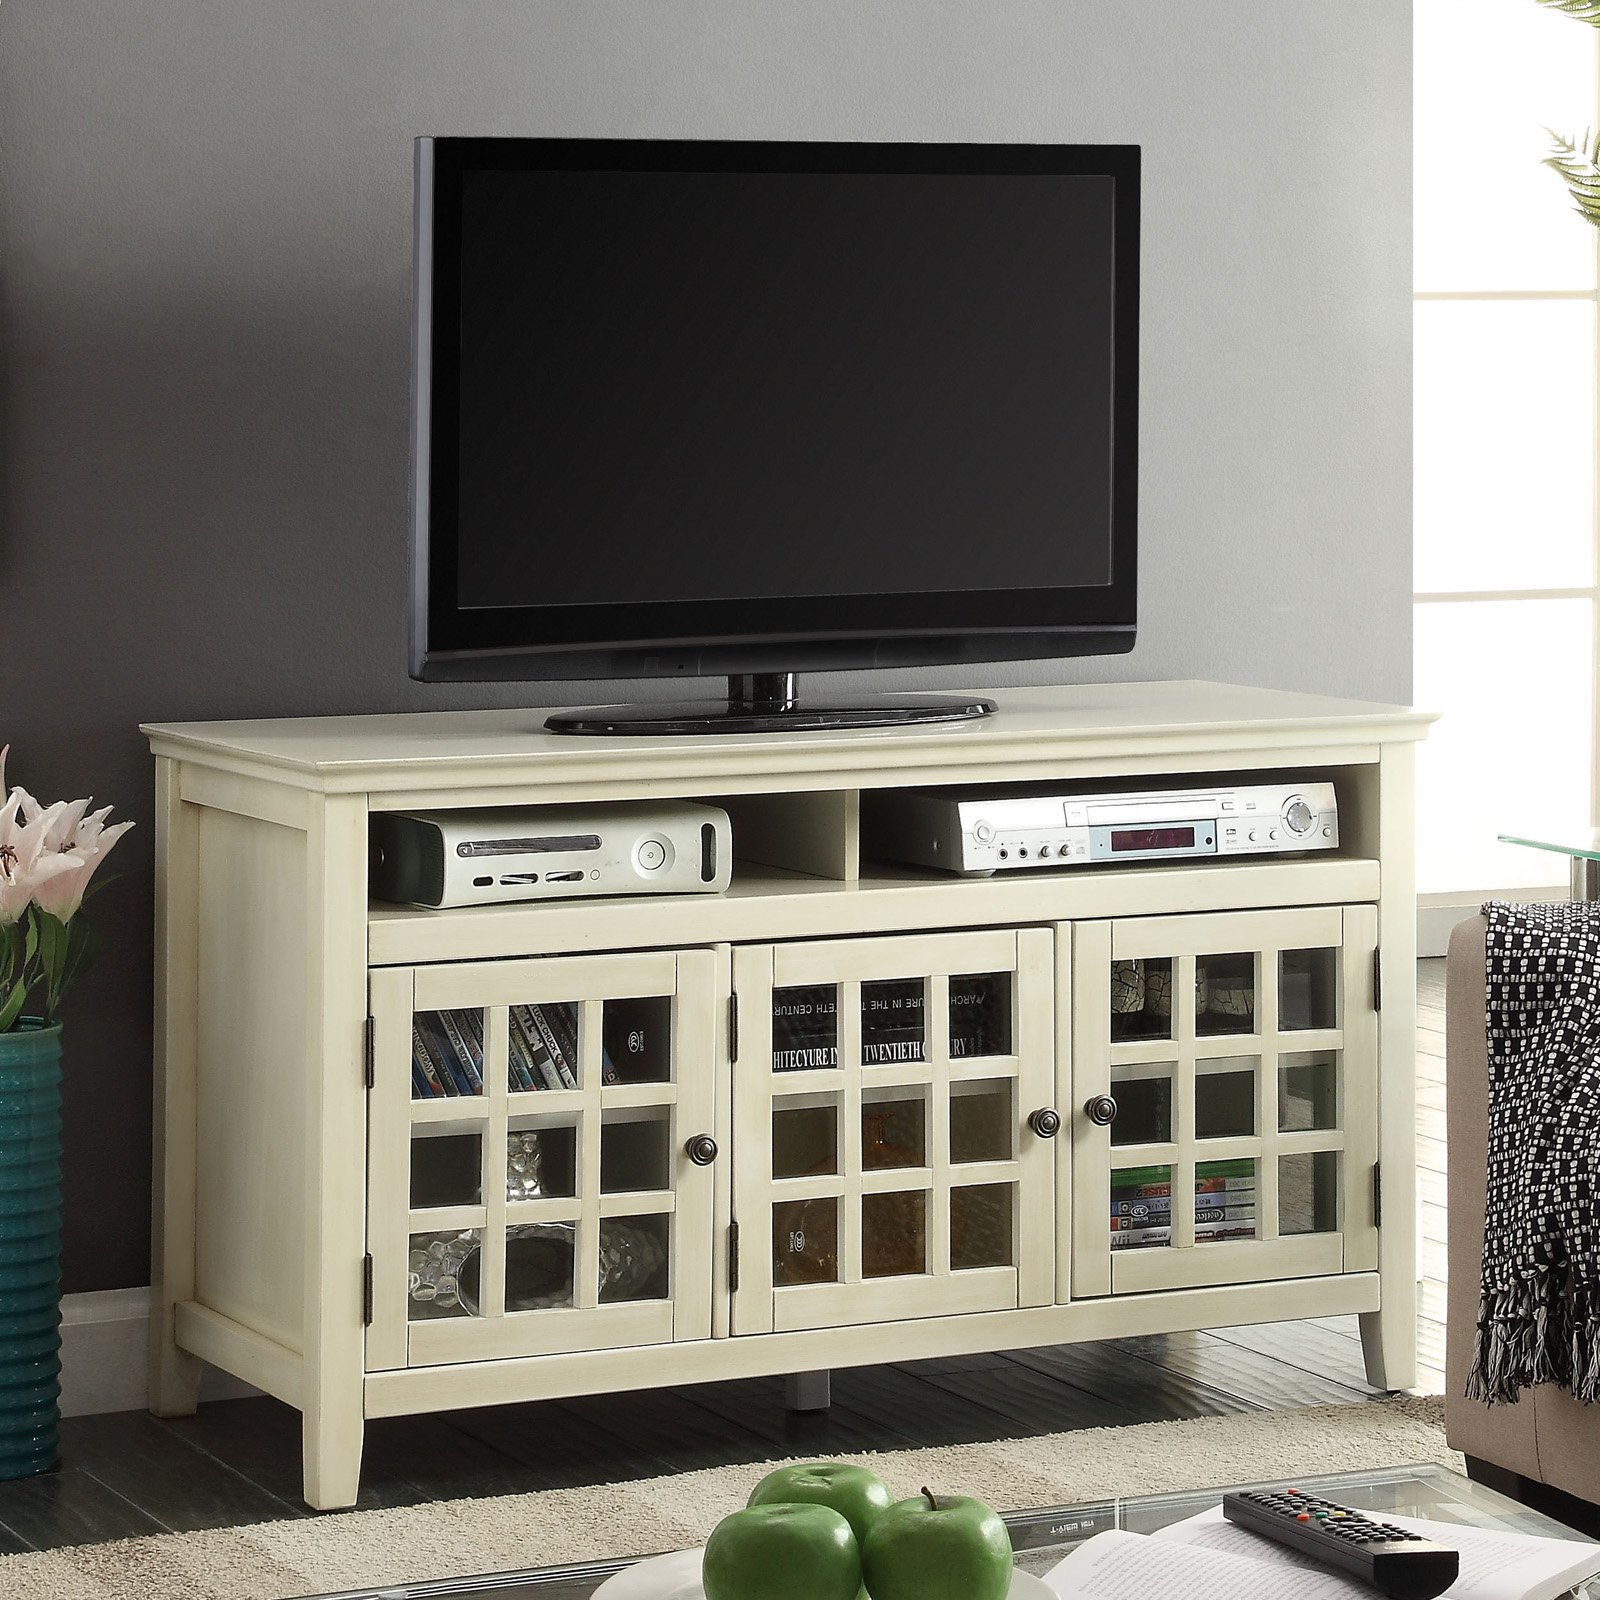 Largo White Media Cabinet by Linon Home Dᅢᄅcor Products Inc.